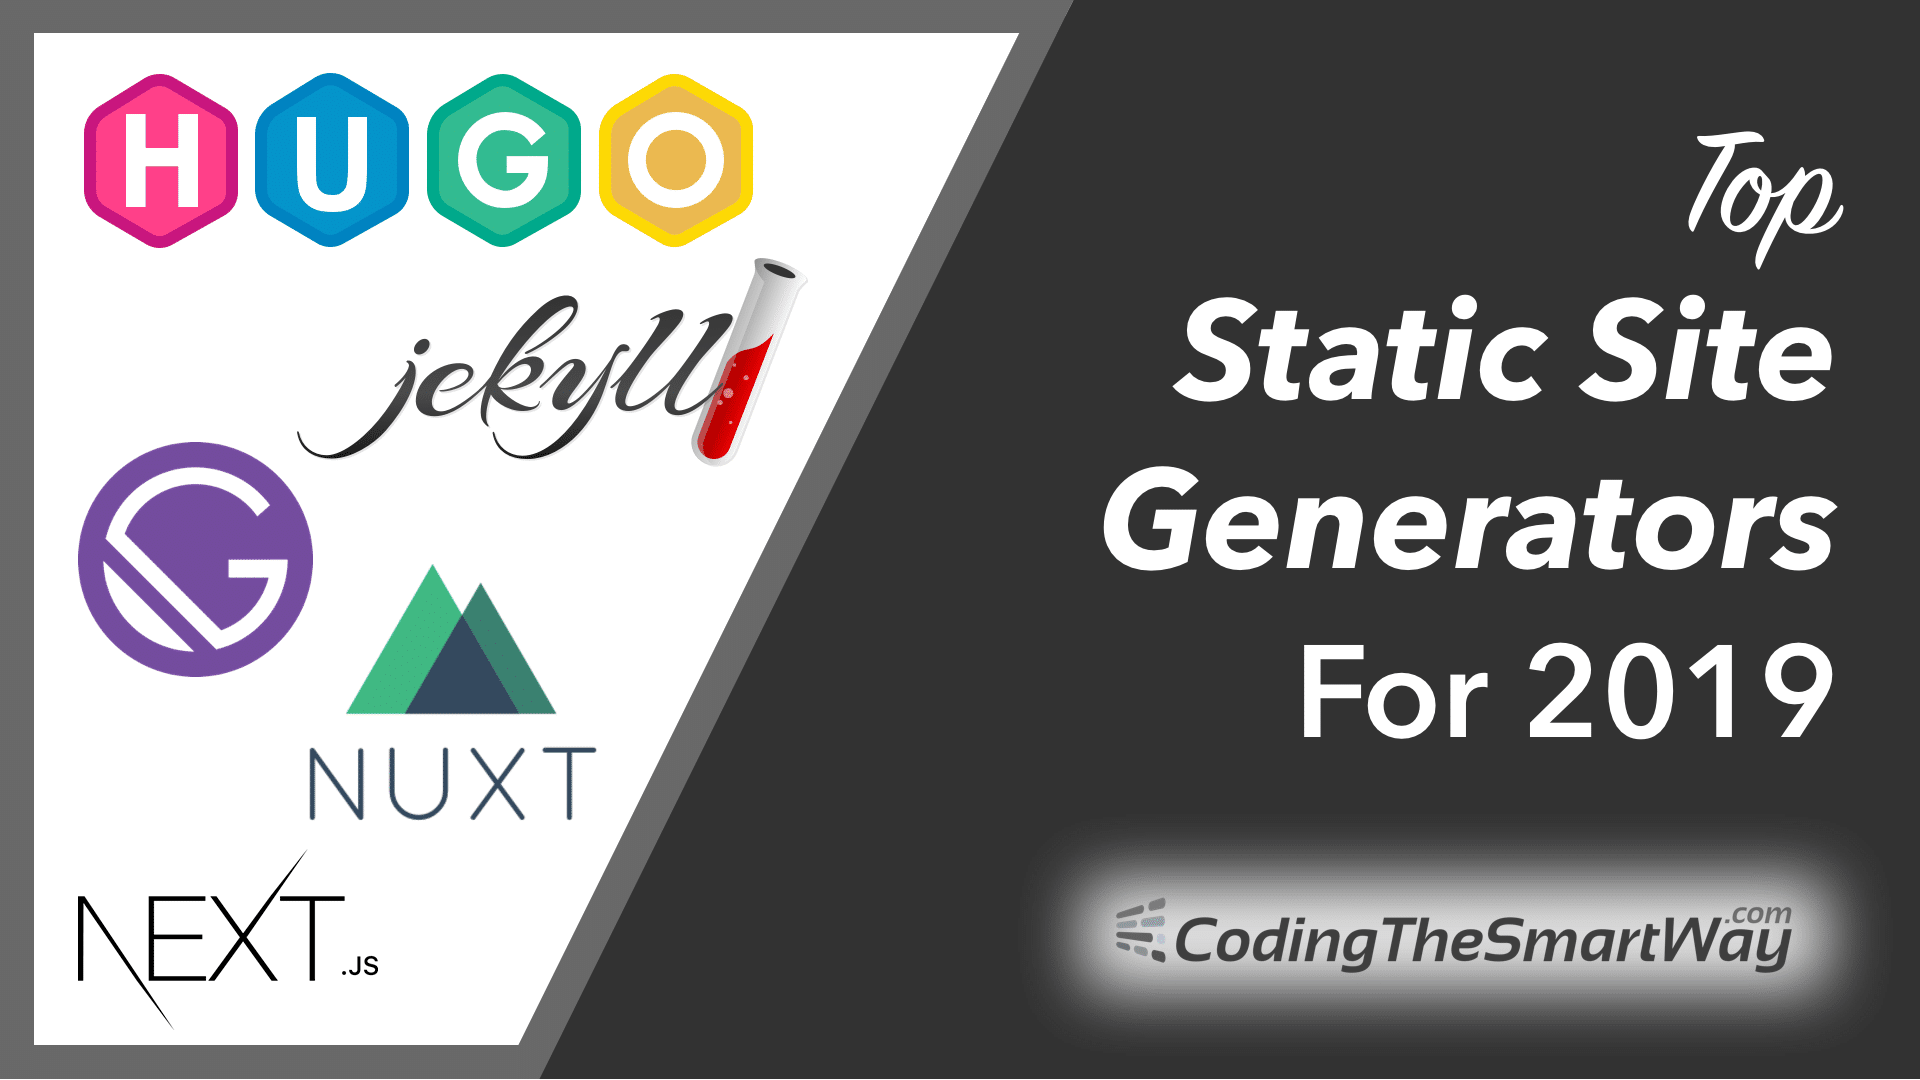 Top Static Site Generators For 2019 - CodingTheSmartWay com